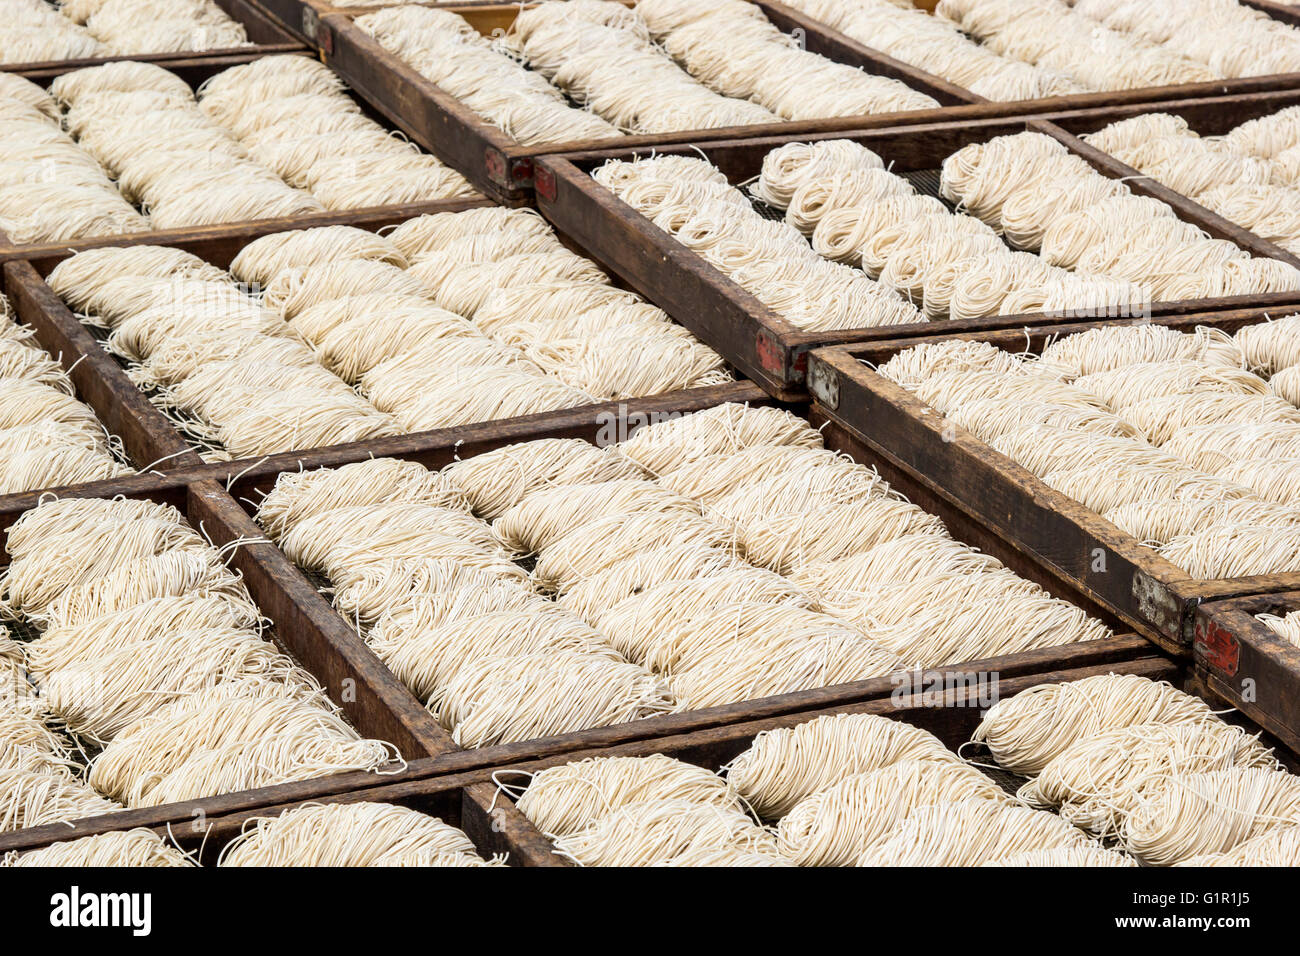 White chinese noodles in wooden trays drying outdoor under the sun - Stock Image